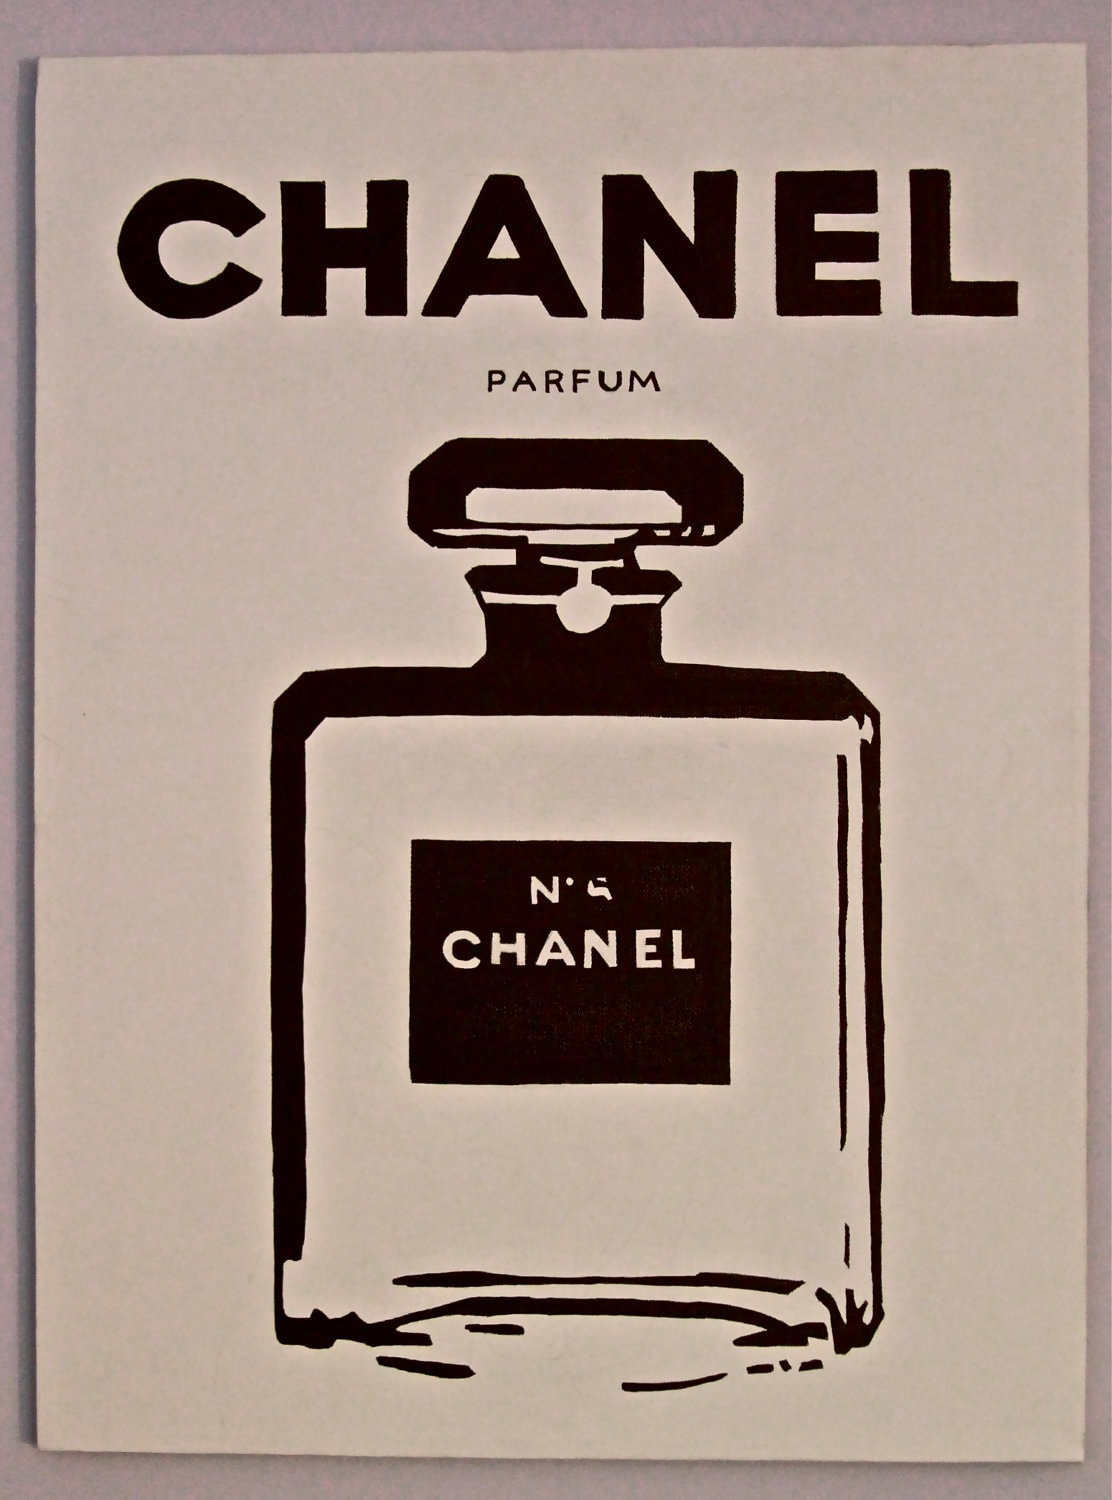 Pin Chanel Perfume Pop Art No 5 By Contrastcanvas On Etsy ...